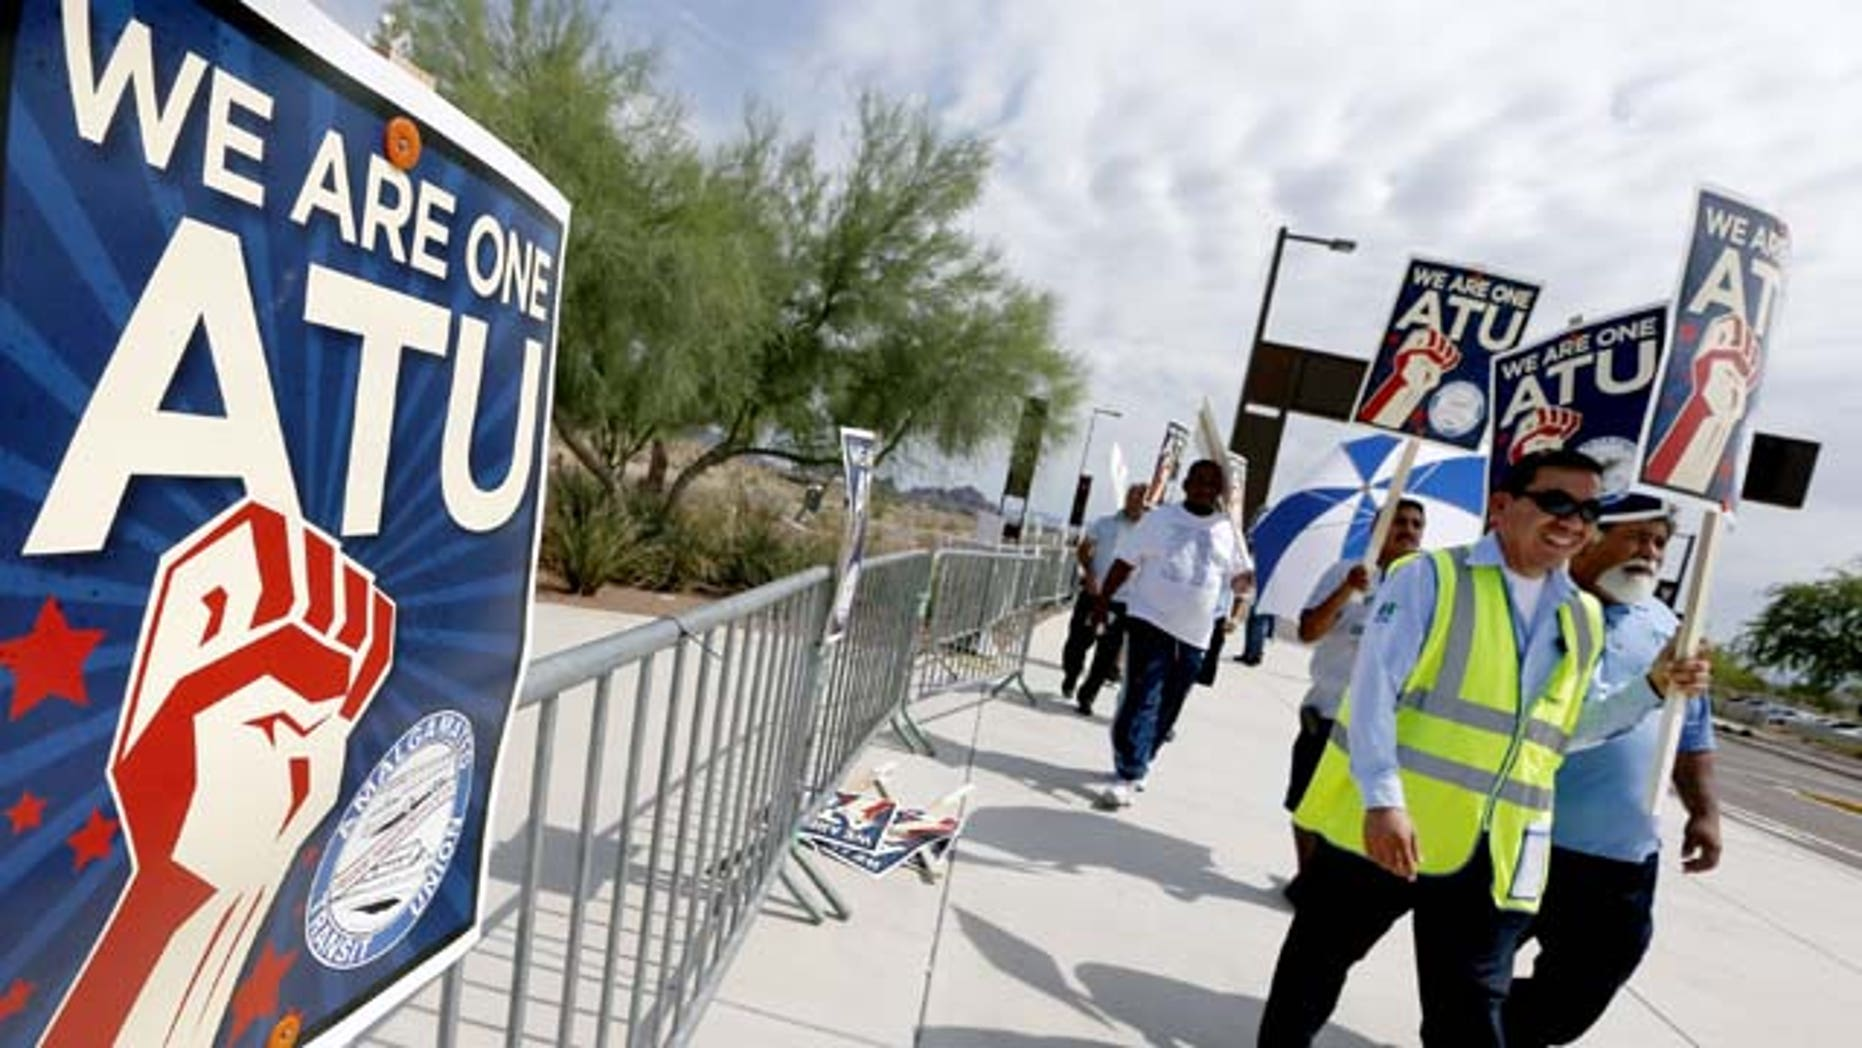 August 1, 2013: Members of the Amalgamated Transit Union Local 1433 strike in front of the First Transit Inc., bus depot in Tempe, Ariz,